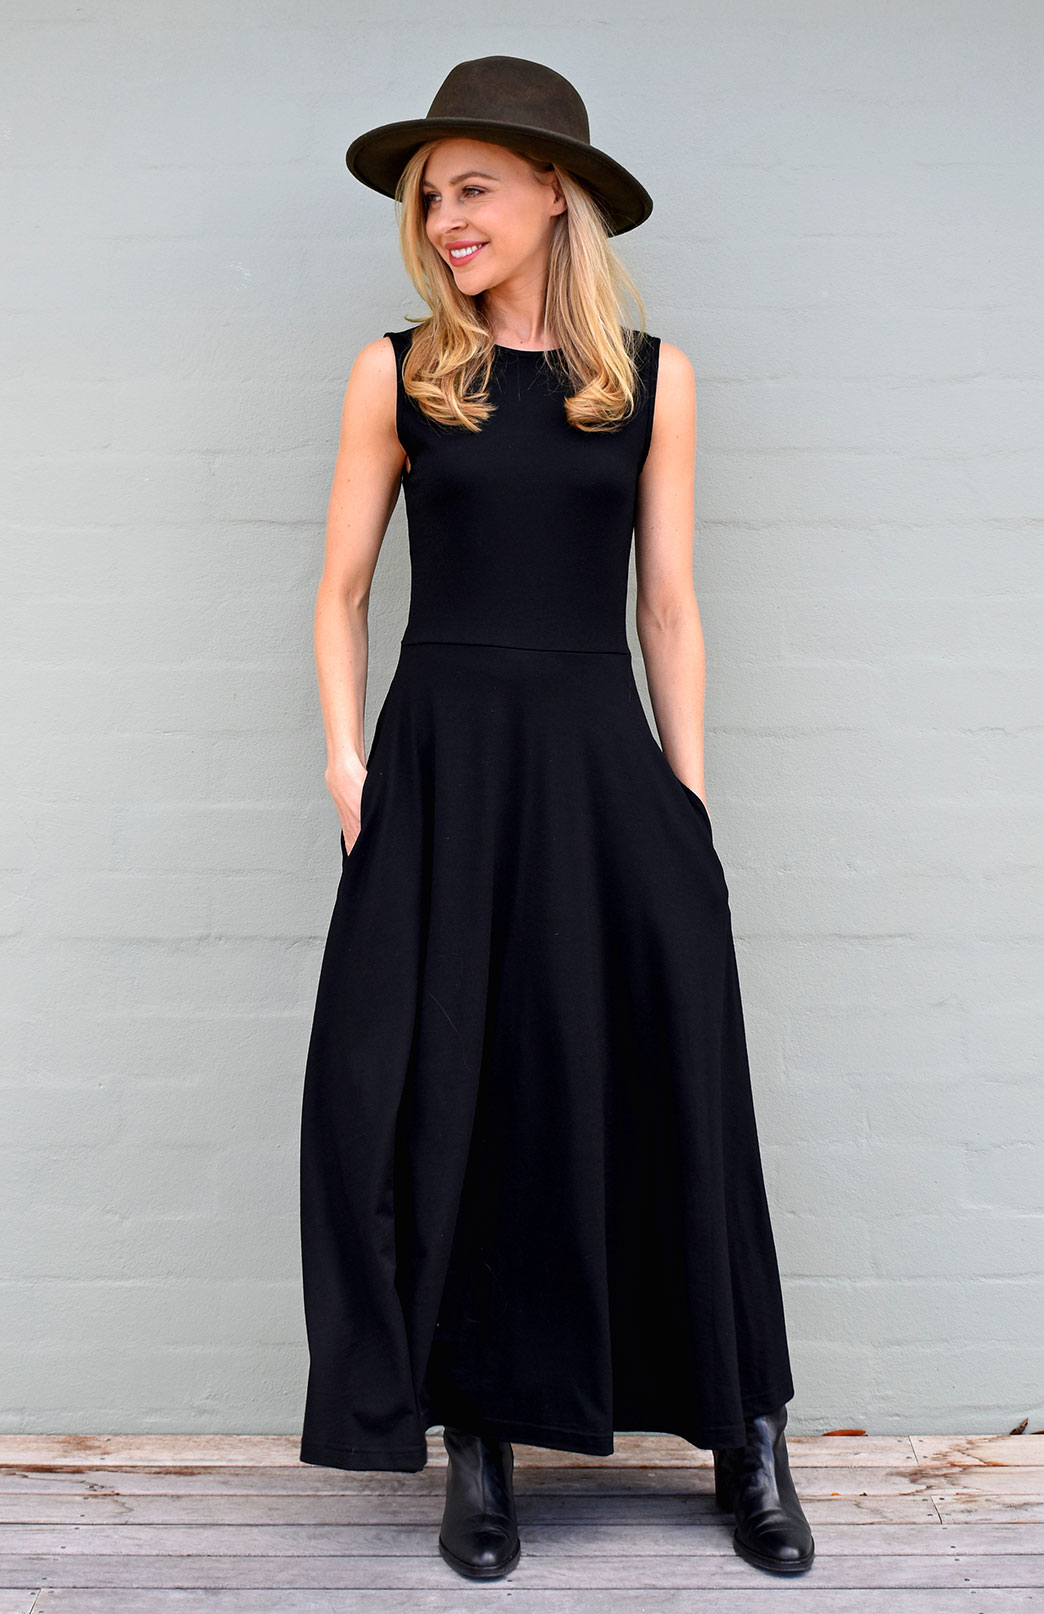 Flo Dress - Women's black sleeveless merino wool dress with high neckline, side pockets, long skirt and dropped waist - Smitten Merino Tasmania Australia